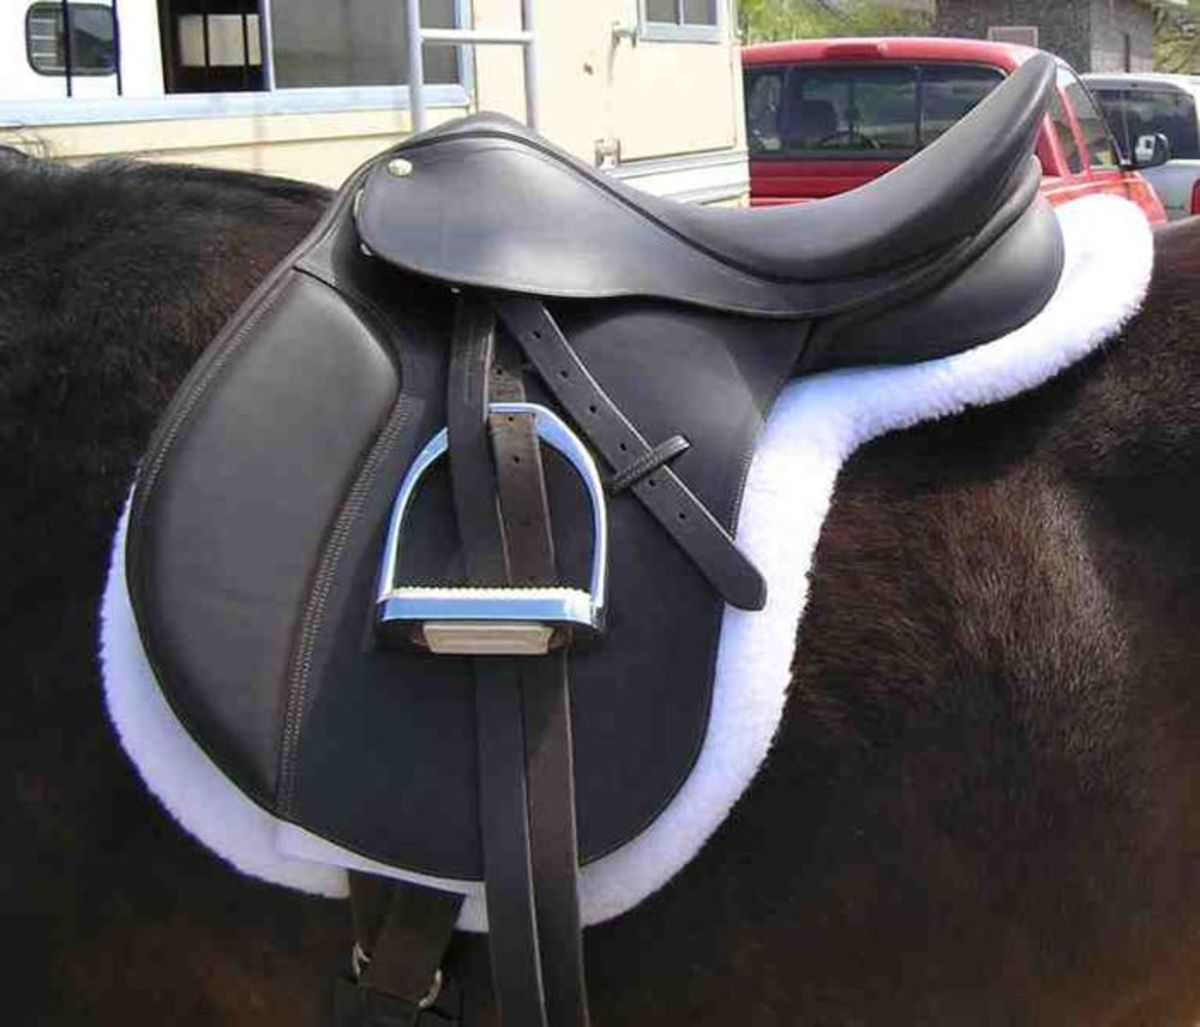 Safely rolled up stirrup leathers. This keeps the stirrups out of the way so that they are less likely to catch on anything